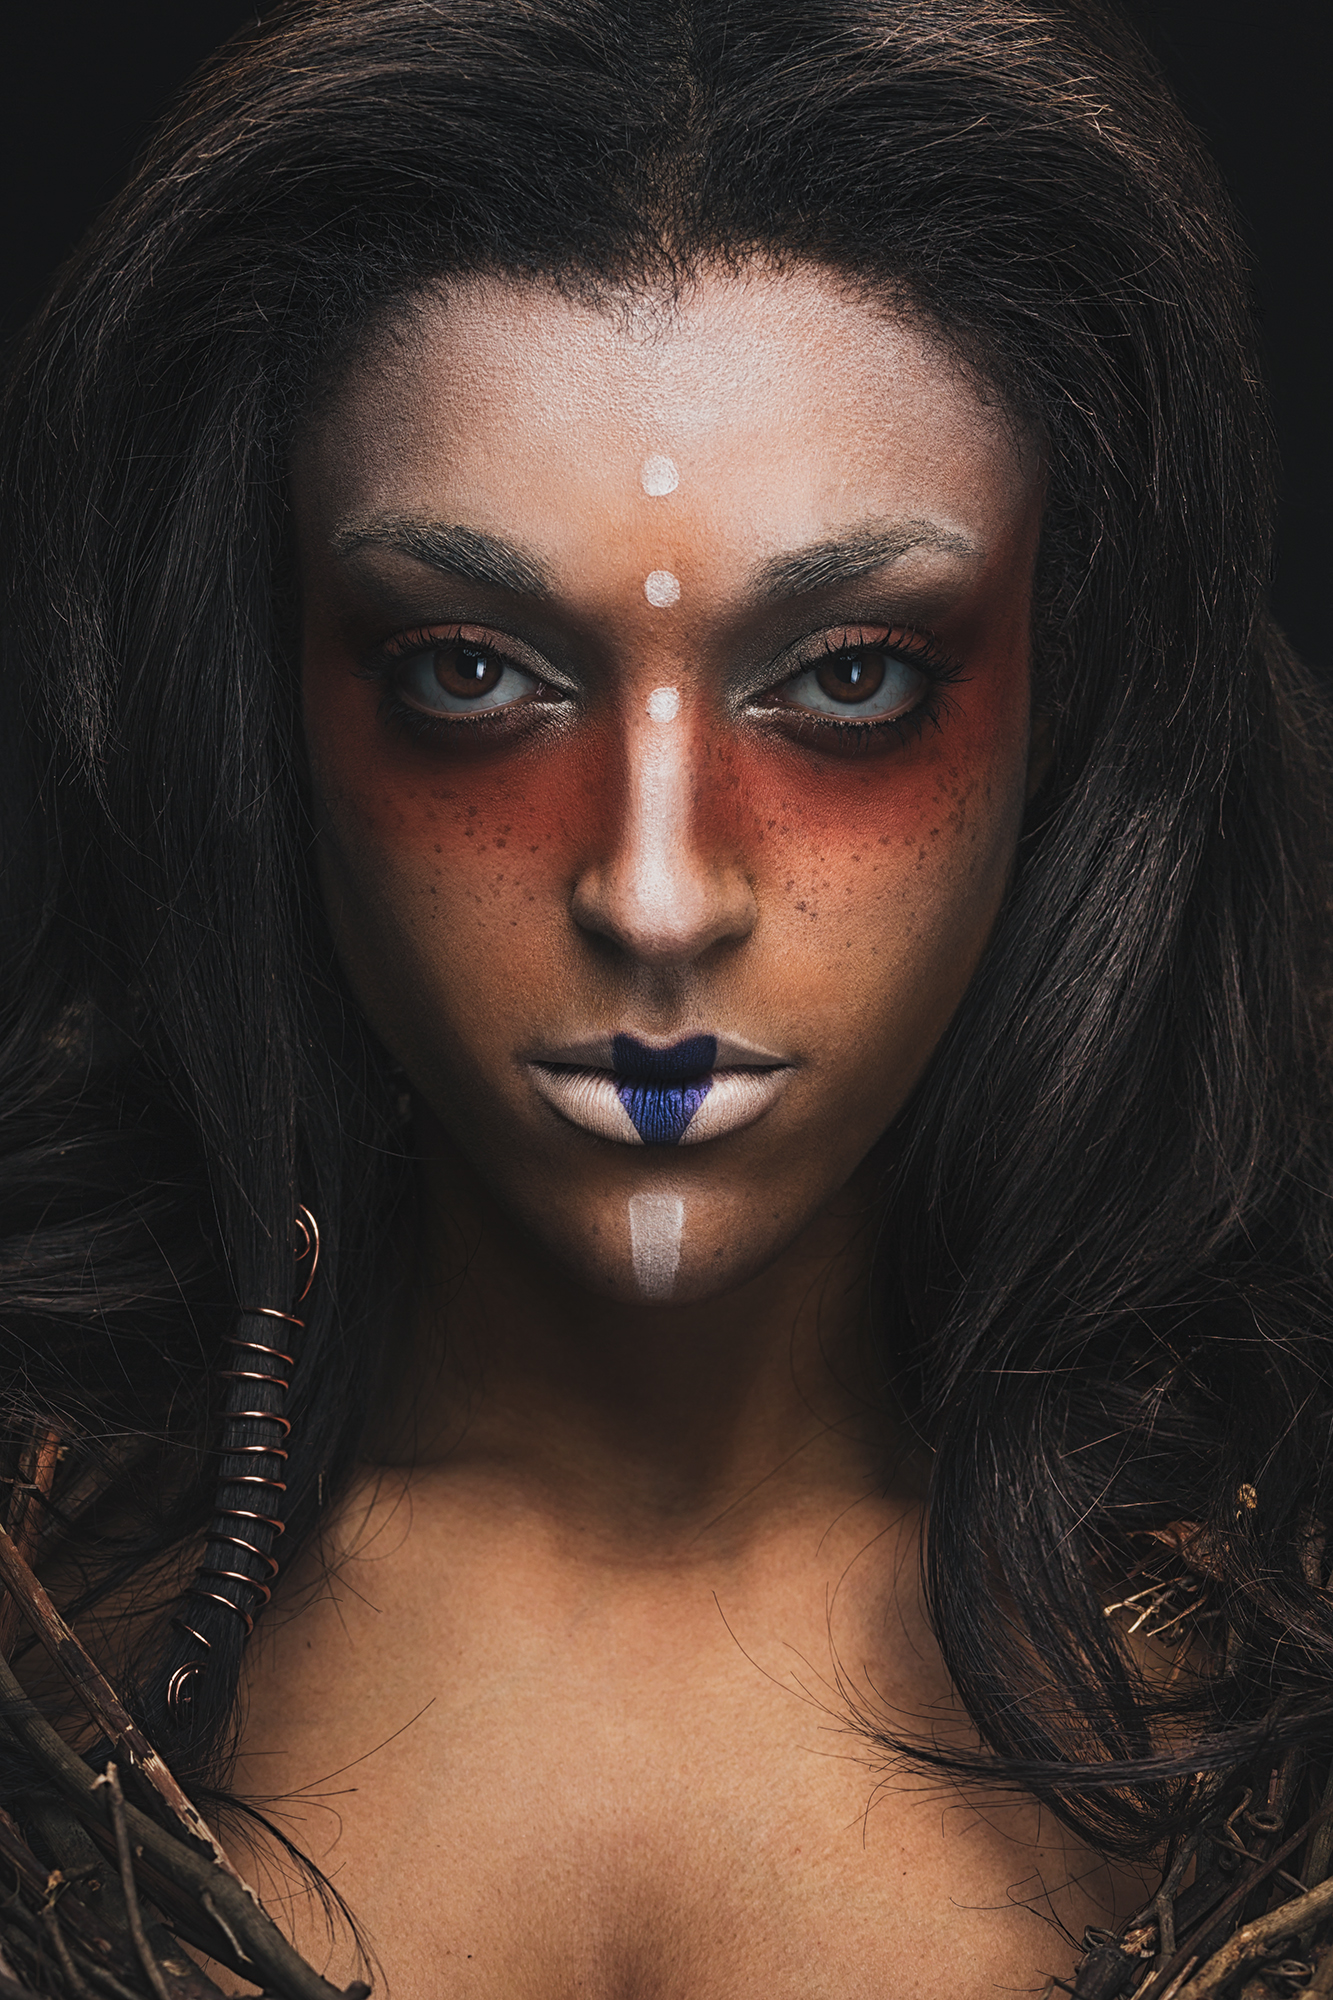 Michael Wessel - Whitney Nicole - makeup stylist Maya Baglien - Tribal-Evolution of A Concept